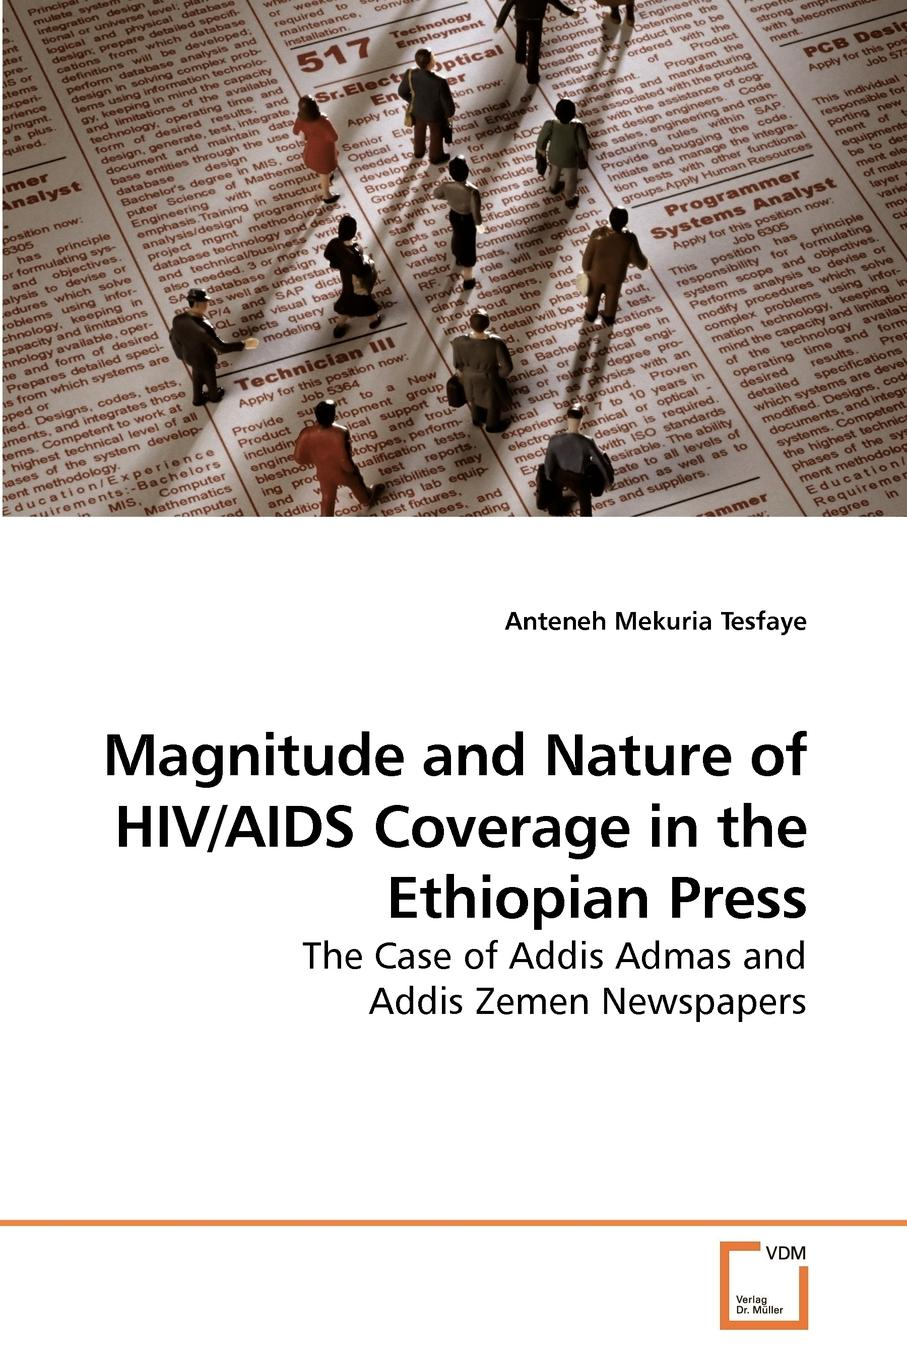 Anteneh Mekuria Tesfaye Magnitude and Nature of HIV/AIDS Coverage in the Ethiopian Press advanced diagnostic microbiological aids in periodontics